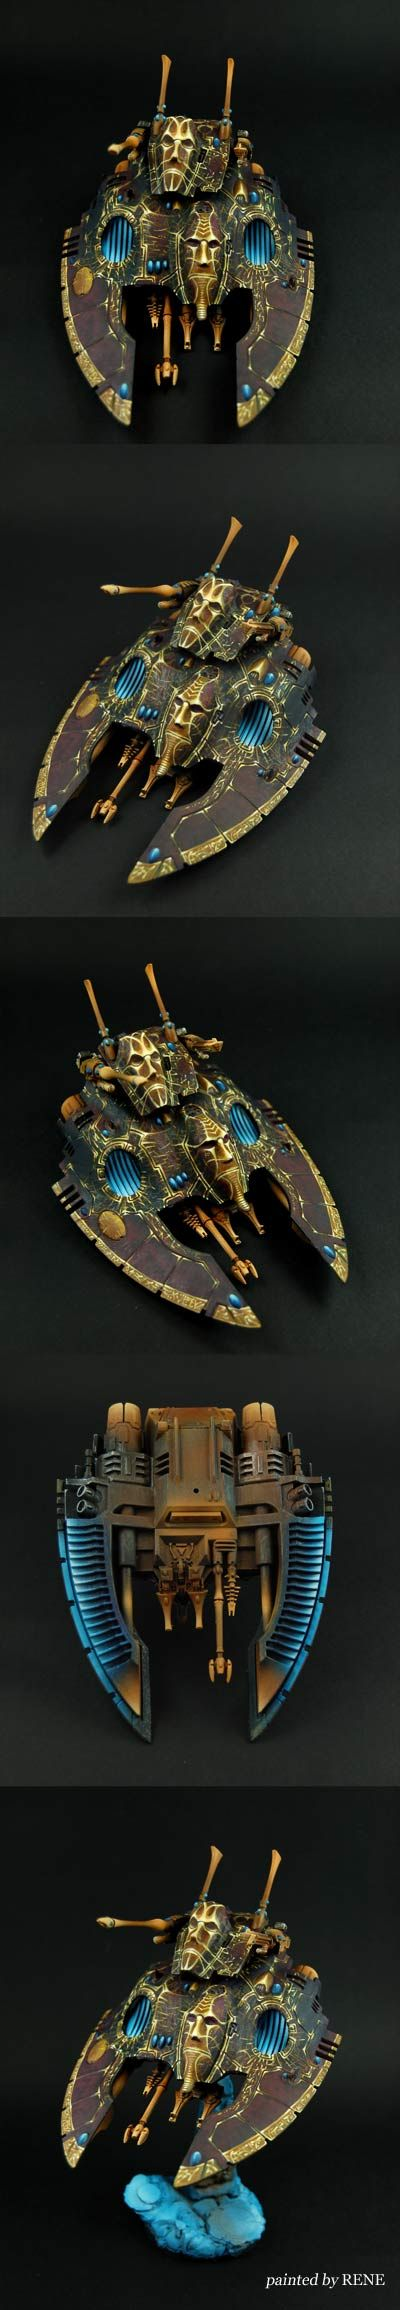 Eldar Falcon. Grim. Dark. Ancient. Look at those golden details on the fins.